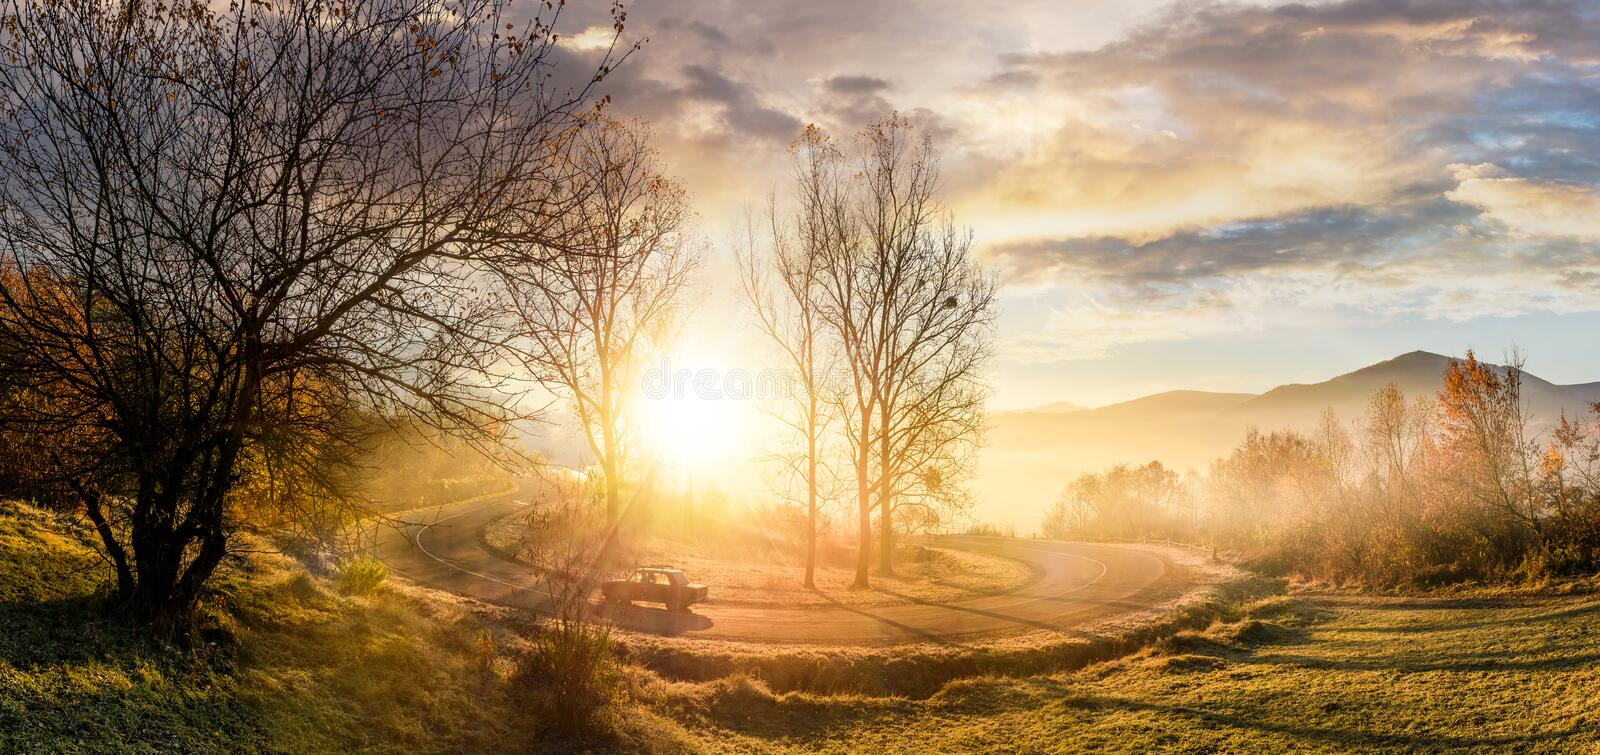 Serpentine turnaround on foggy sunrise. Naked trees on grassy hillsides under gorgeous cloudy sky over the mountain ridge in a distance. beautiful late autumn stock photography